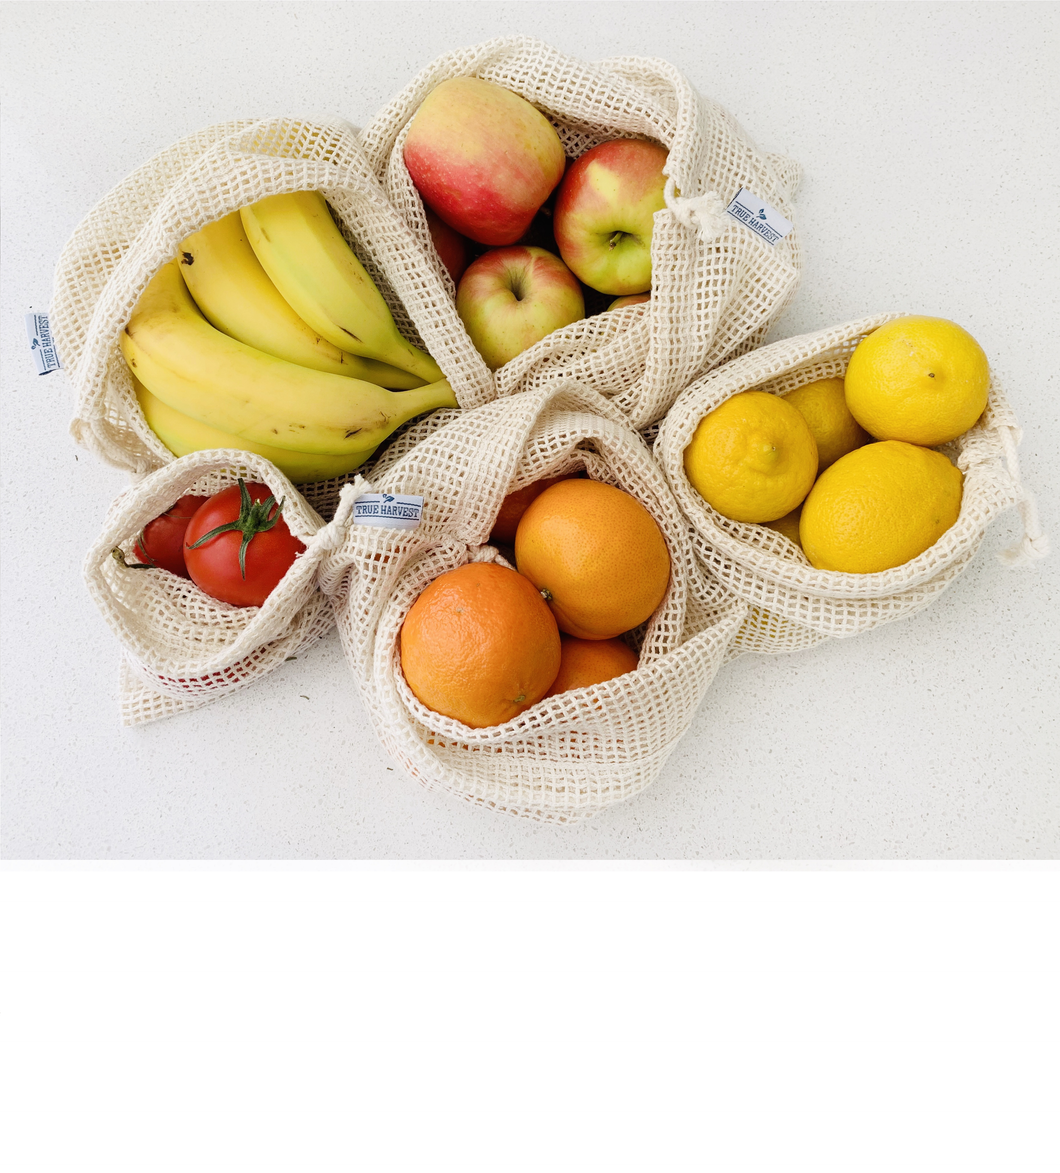 Organic Cotton Mesh Produce Bag Set - True Harvest